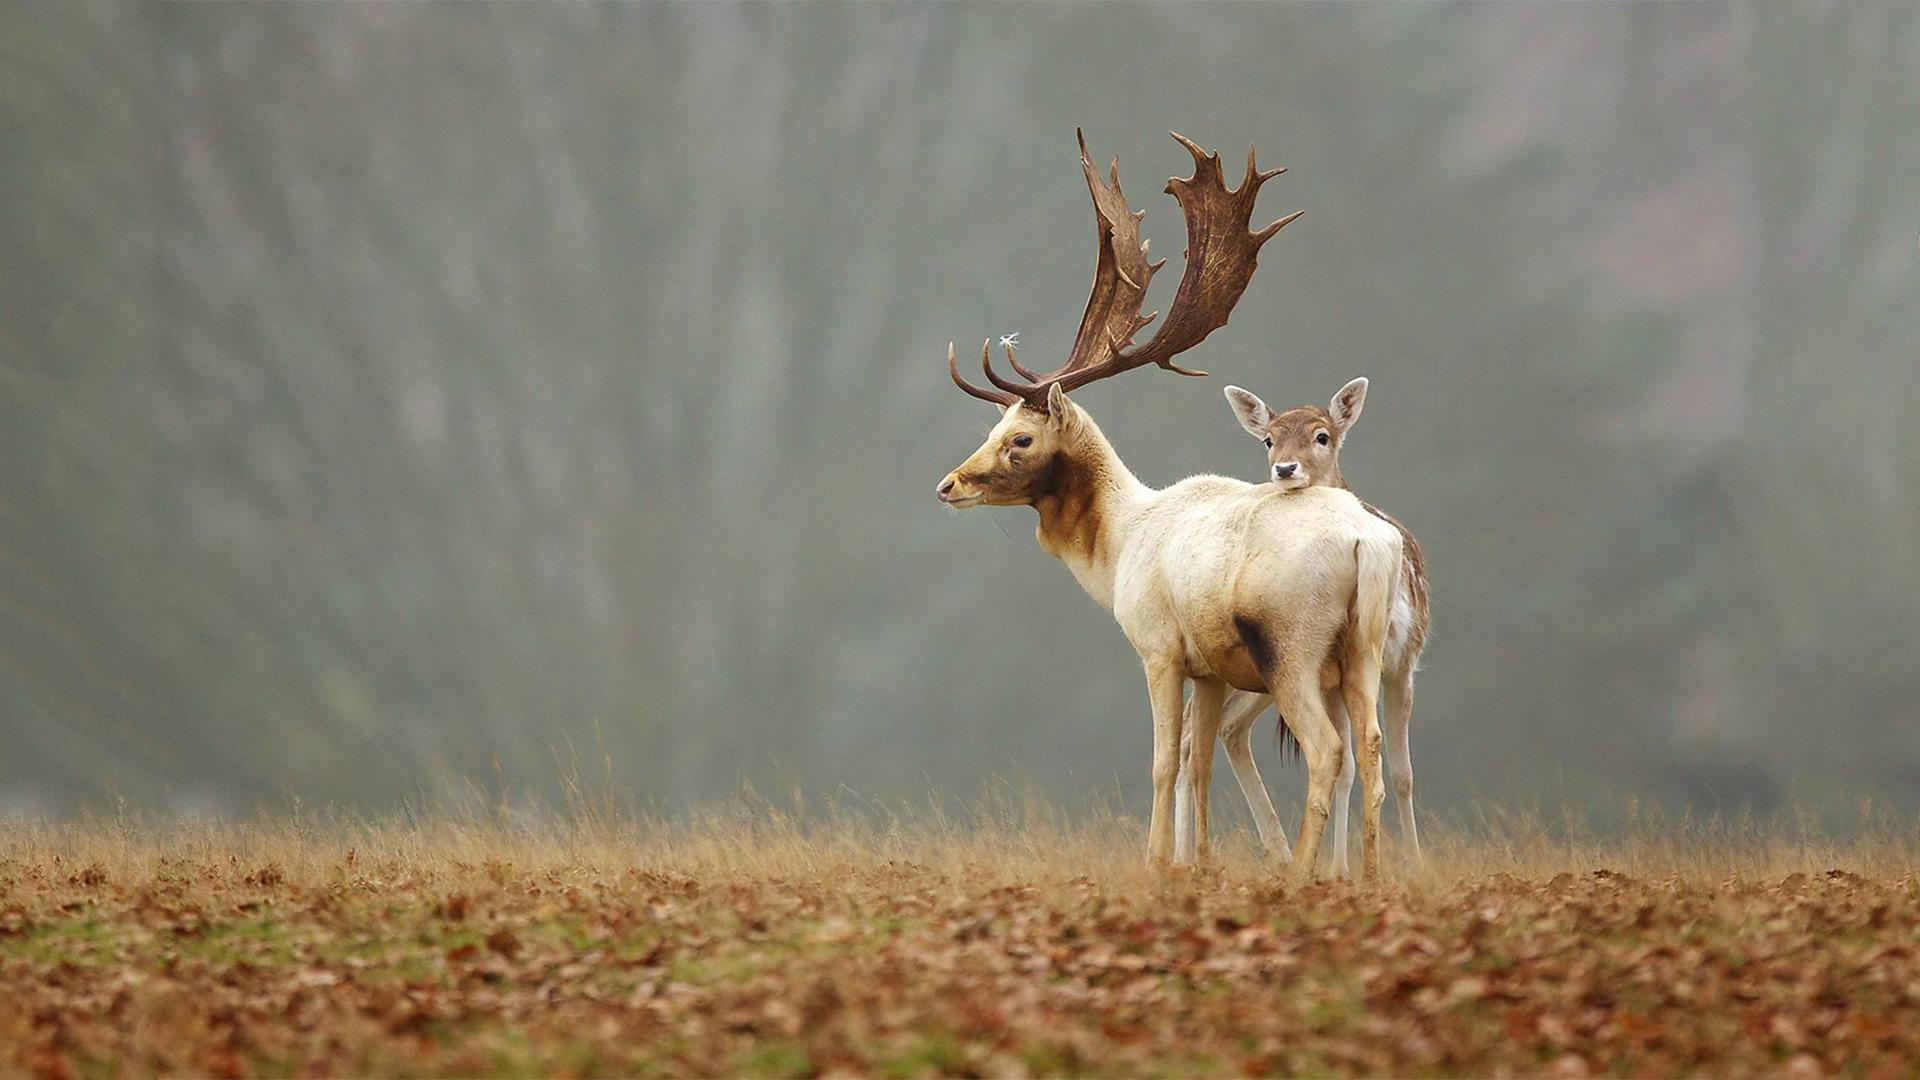 Deer latest hd wallpapers | Only hd wallpapers